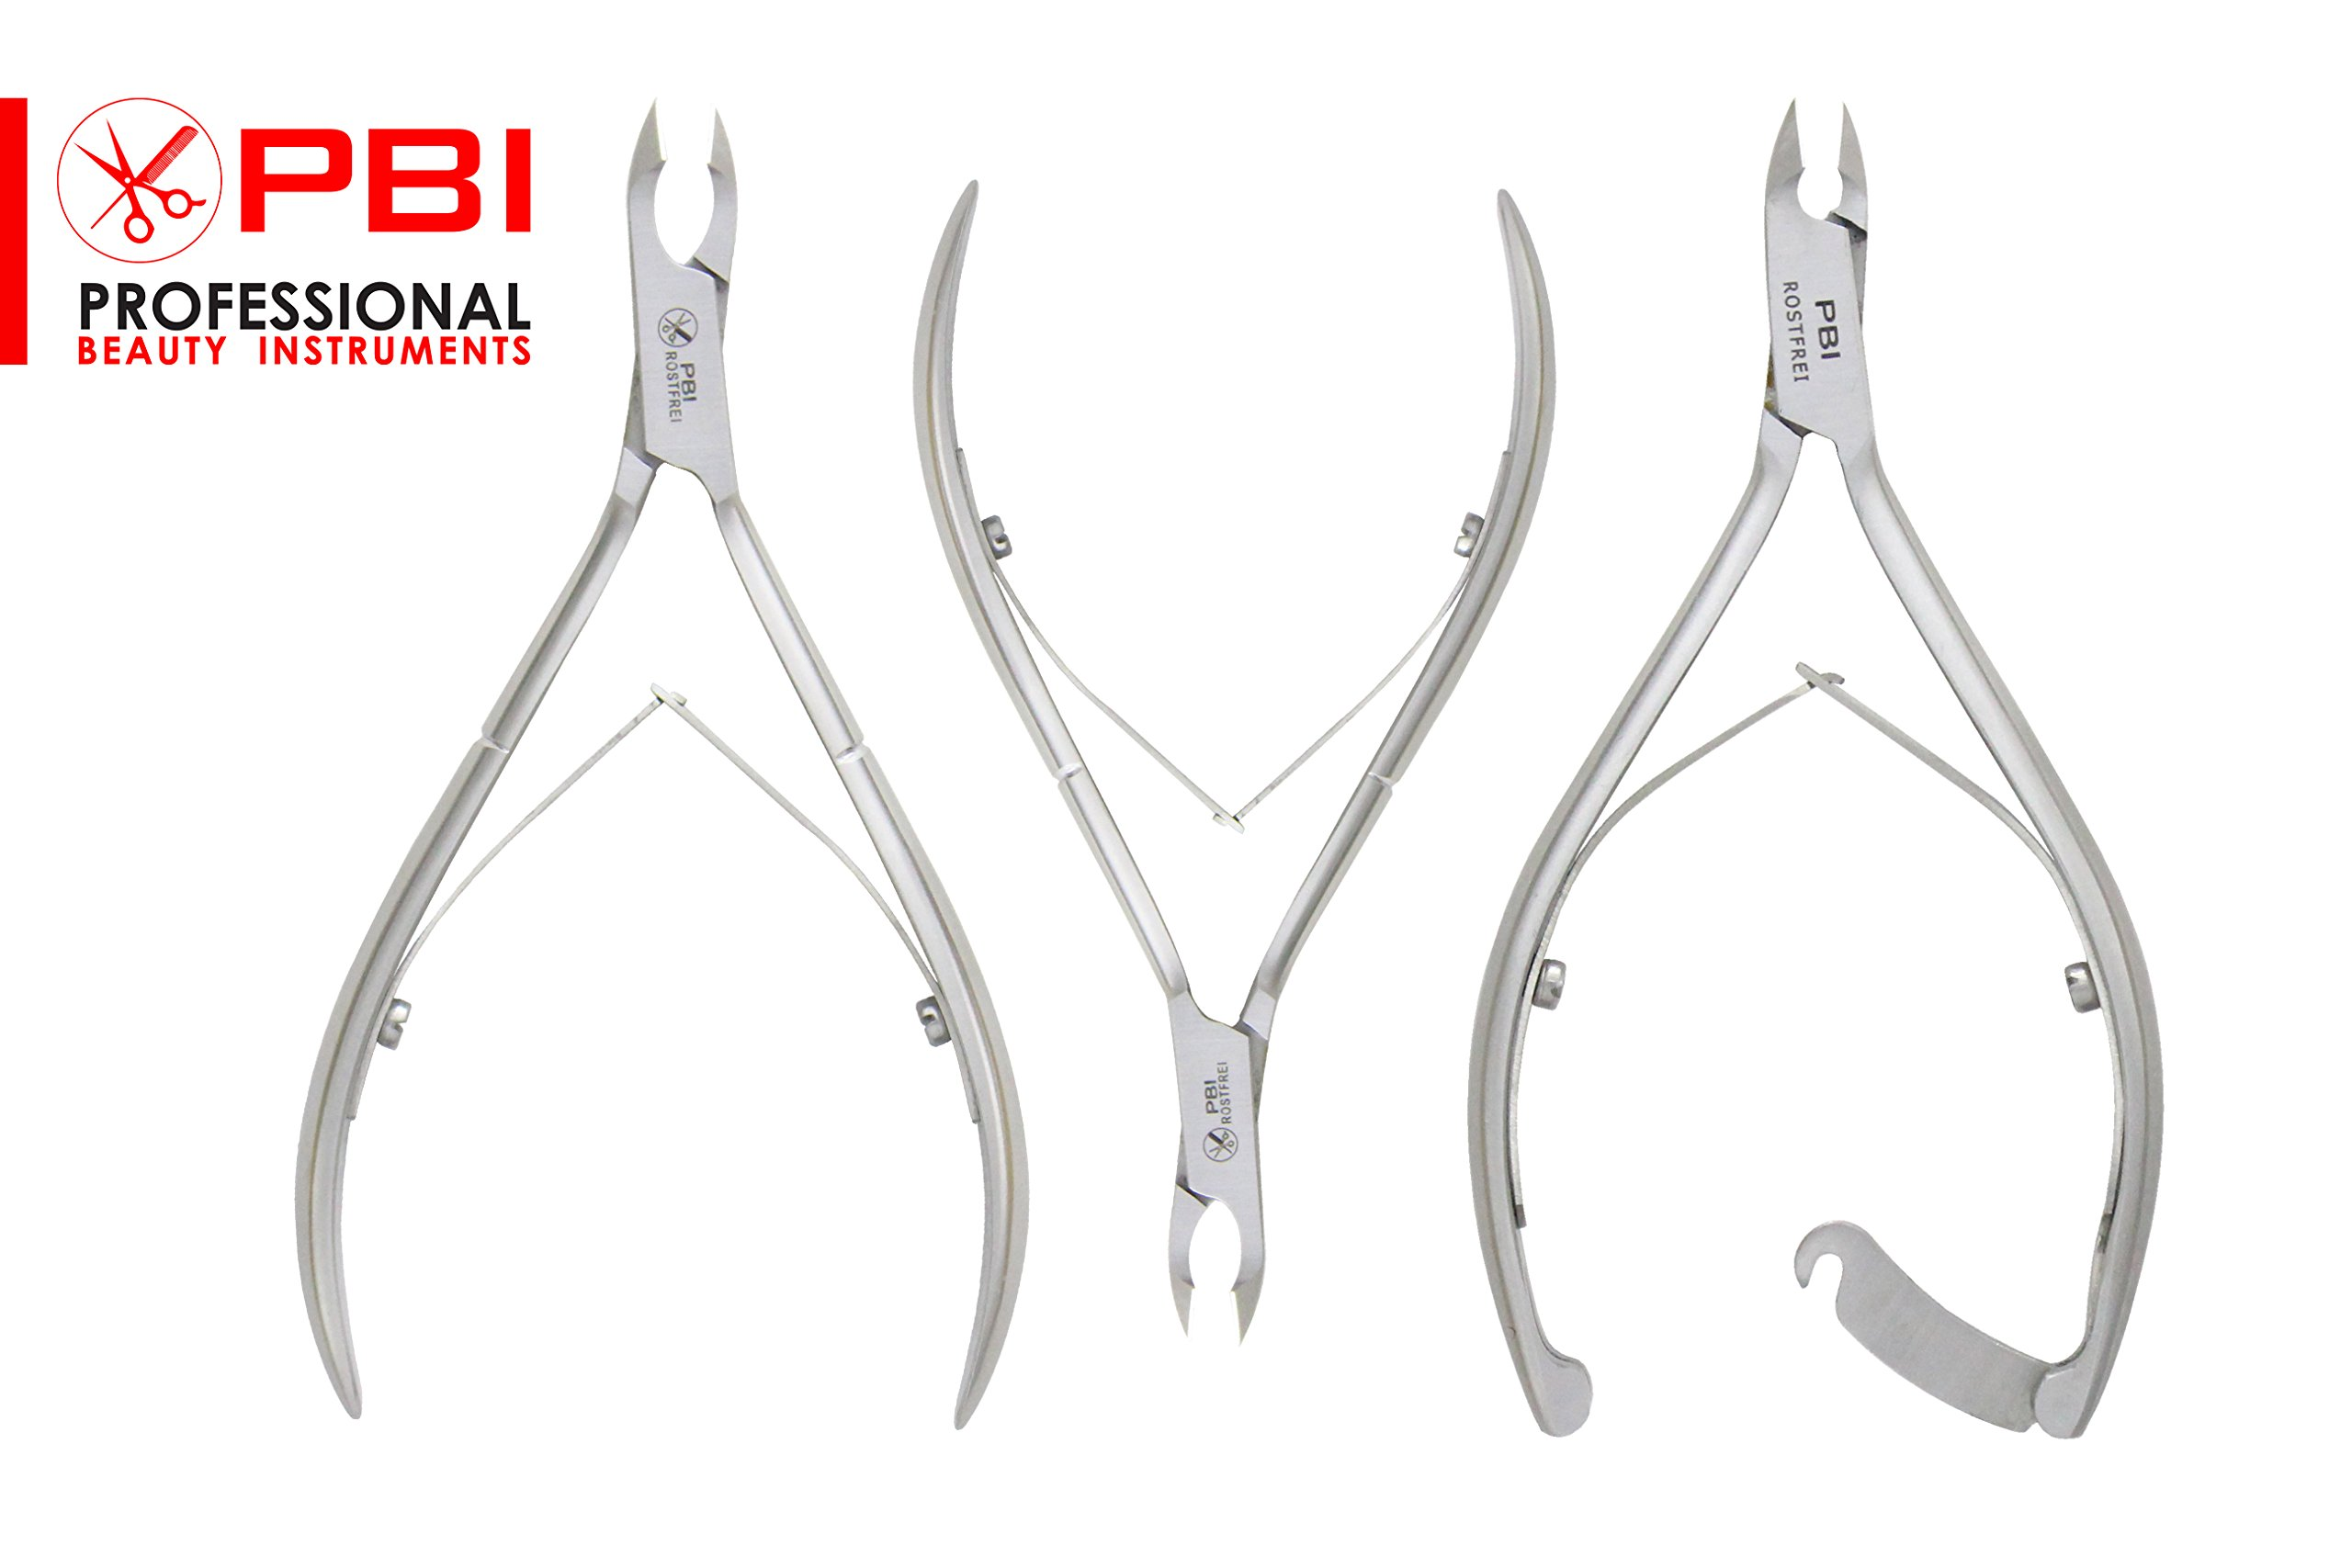 Cuticle Nipper Stainless Steel Pliers With Double Spring (3 Pieces Set) Manicure Pedicure From PBI